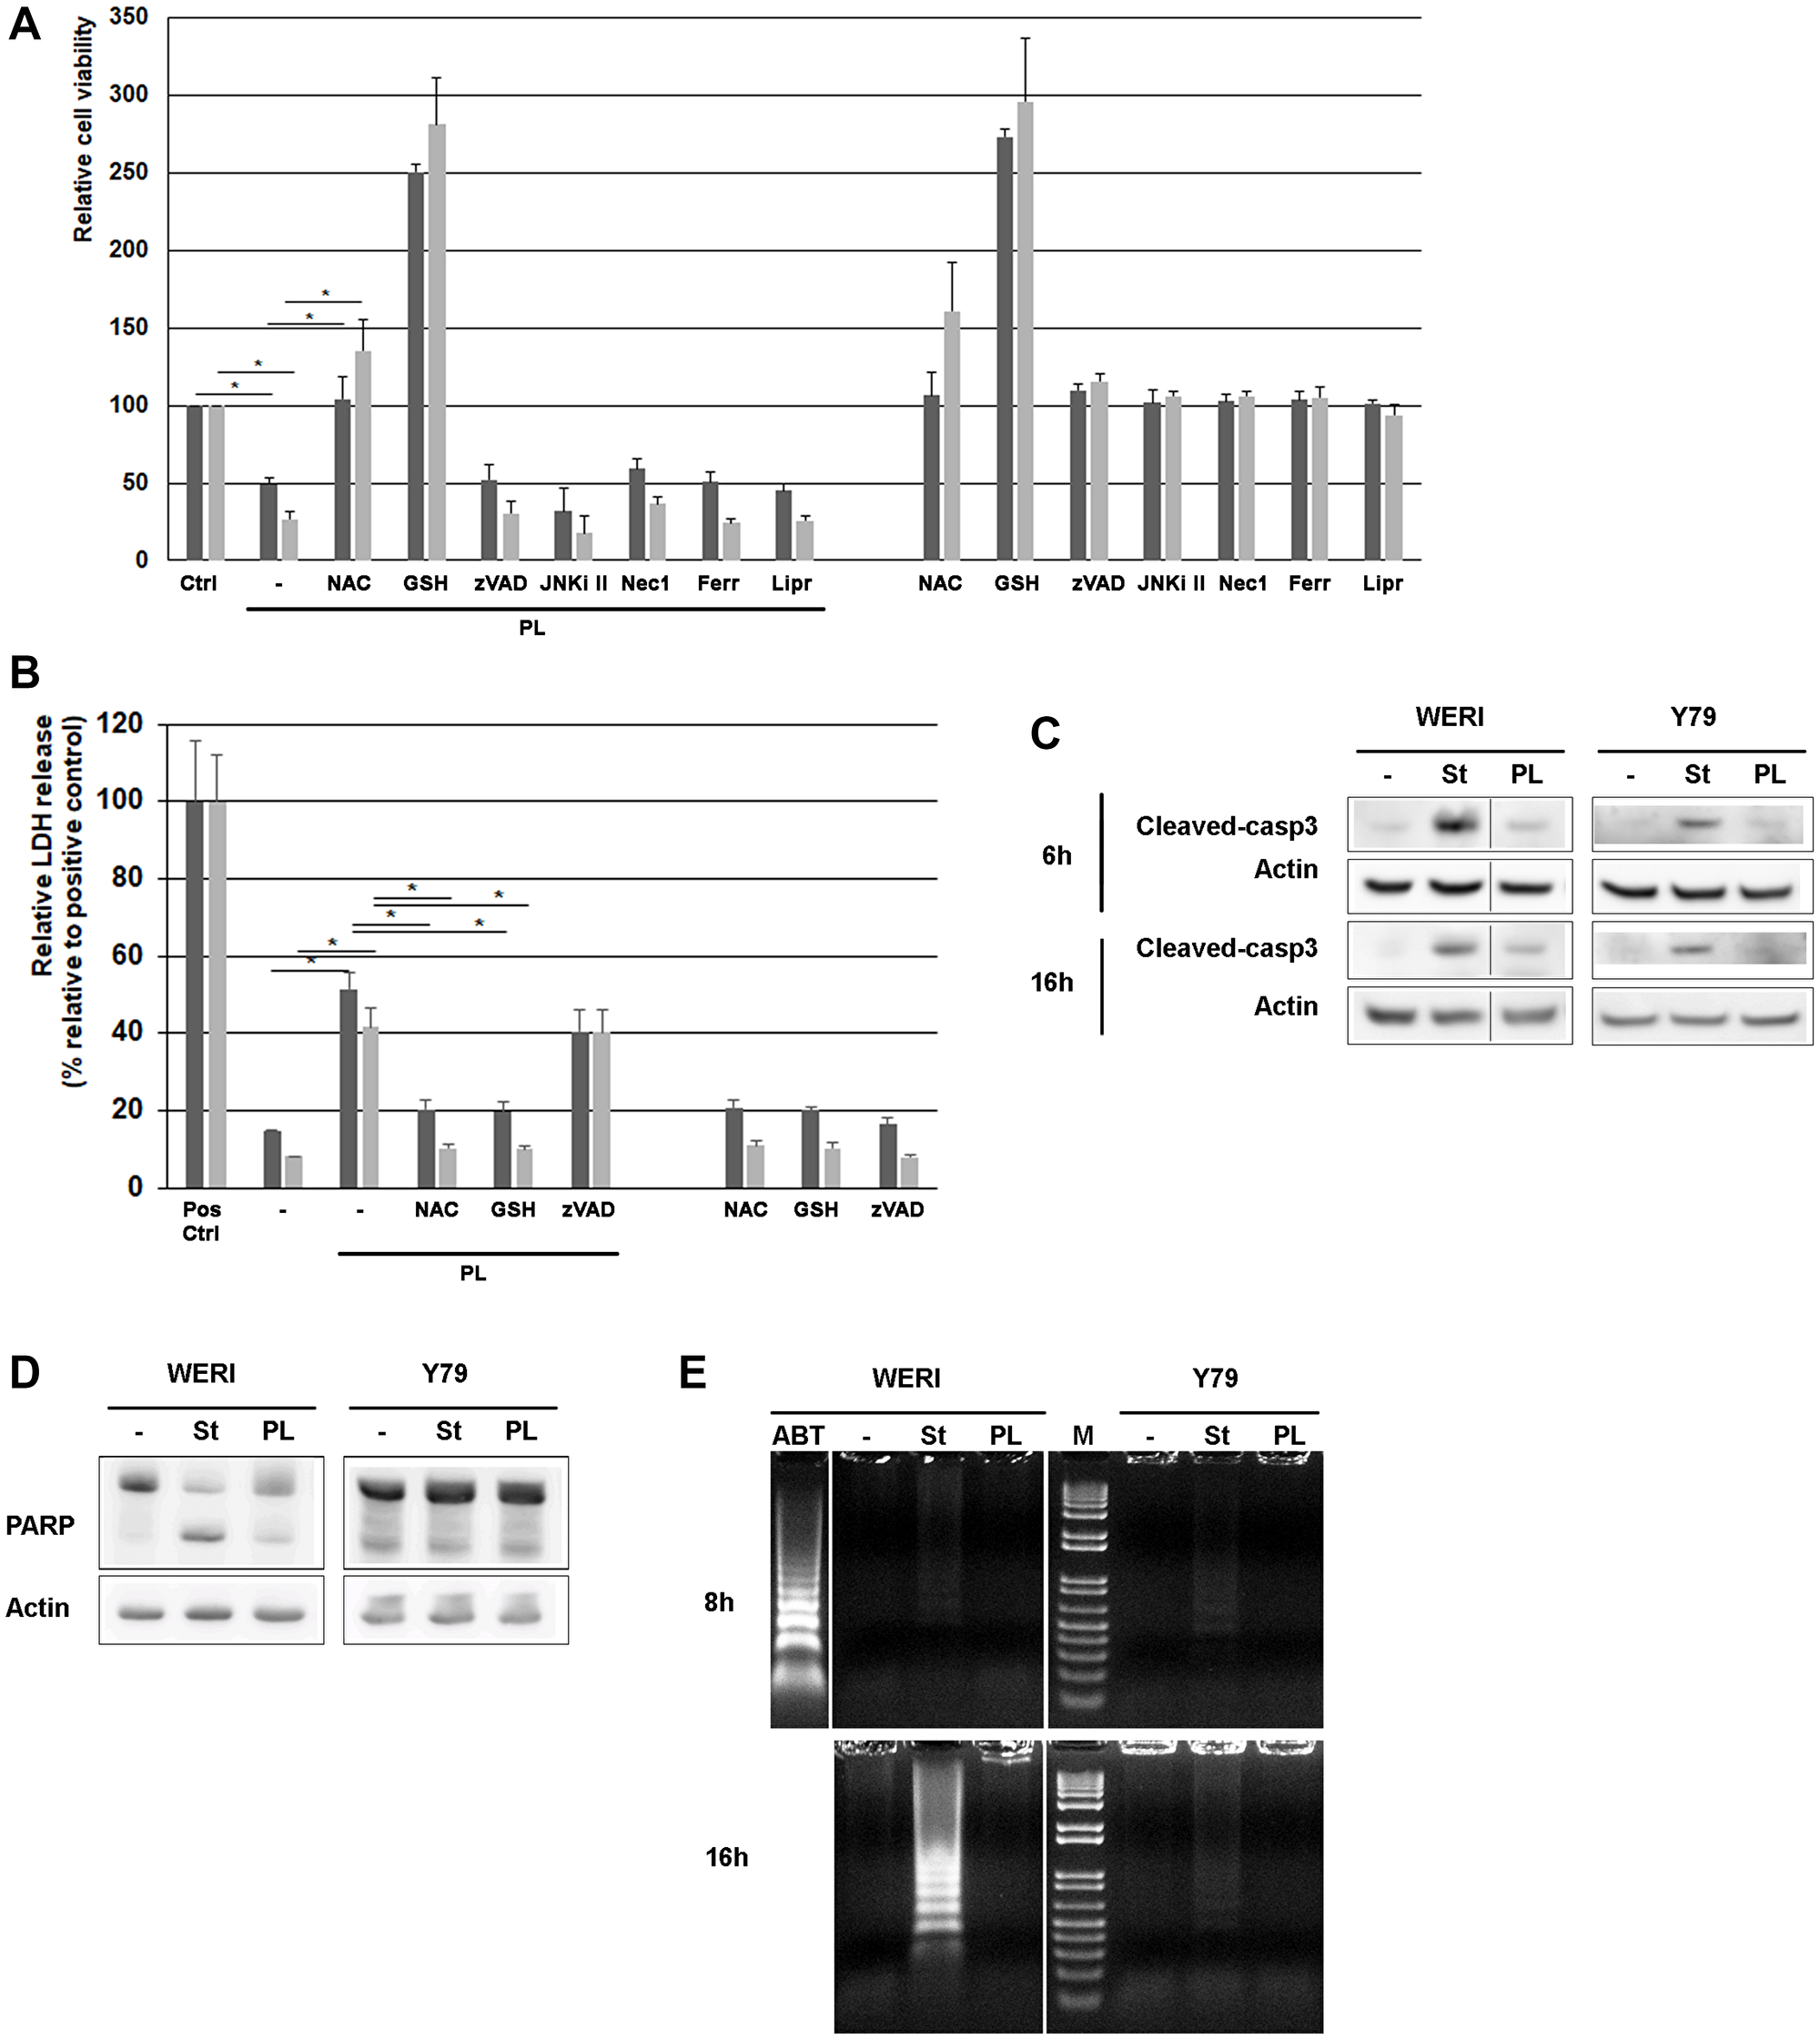 PL induces cell death in WERI-Rb and Y79 retinoblastoma cells.